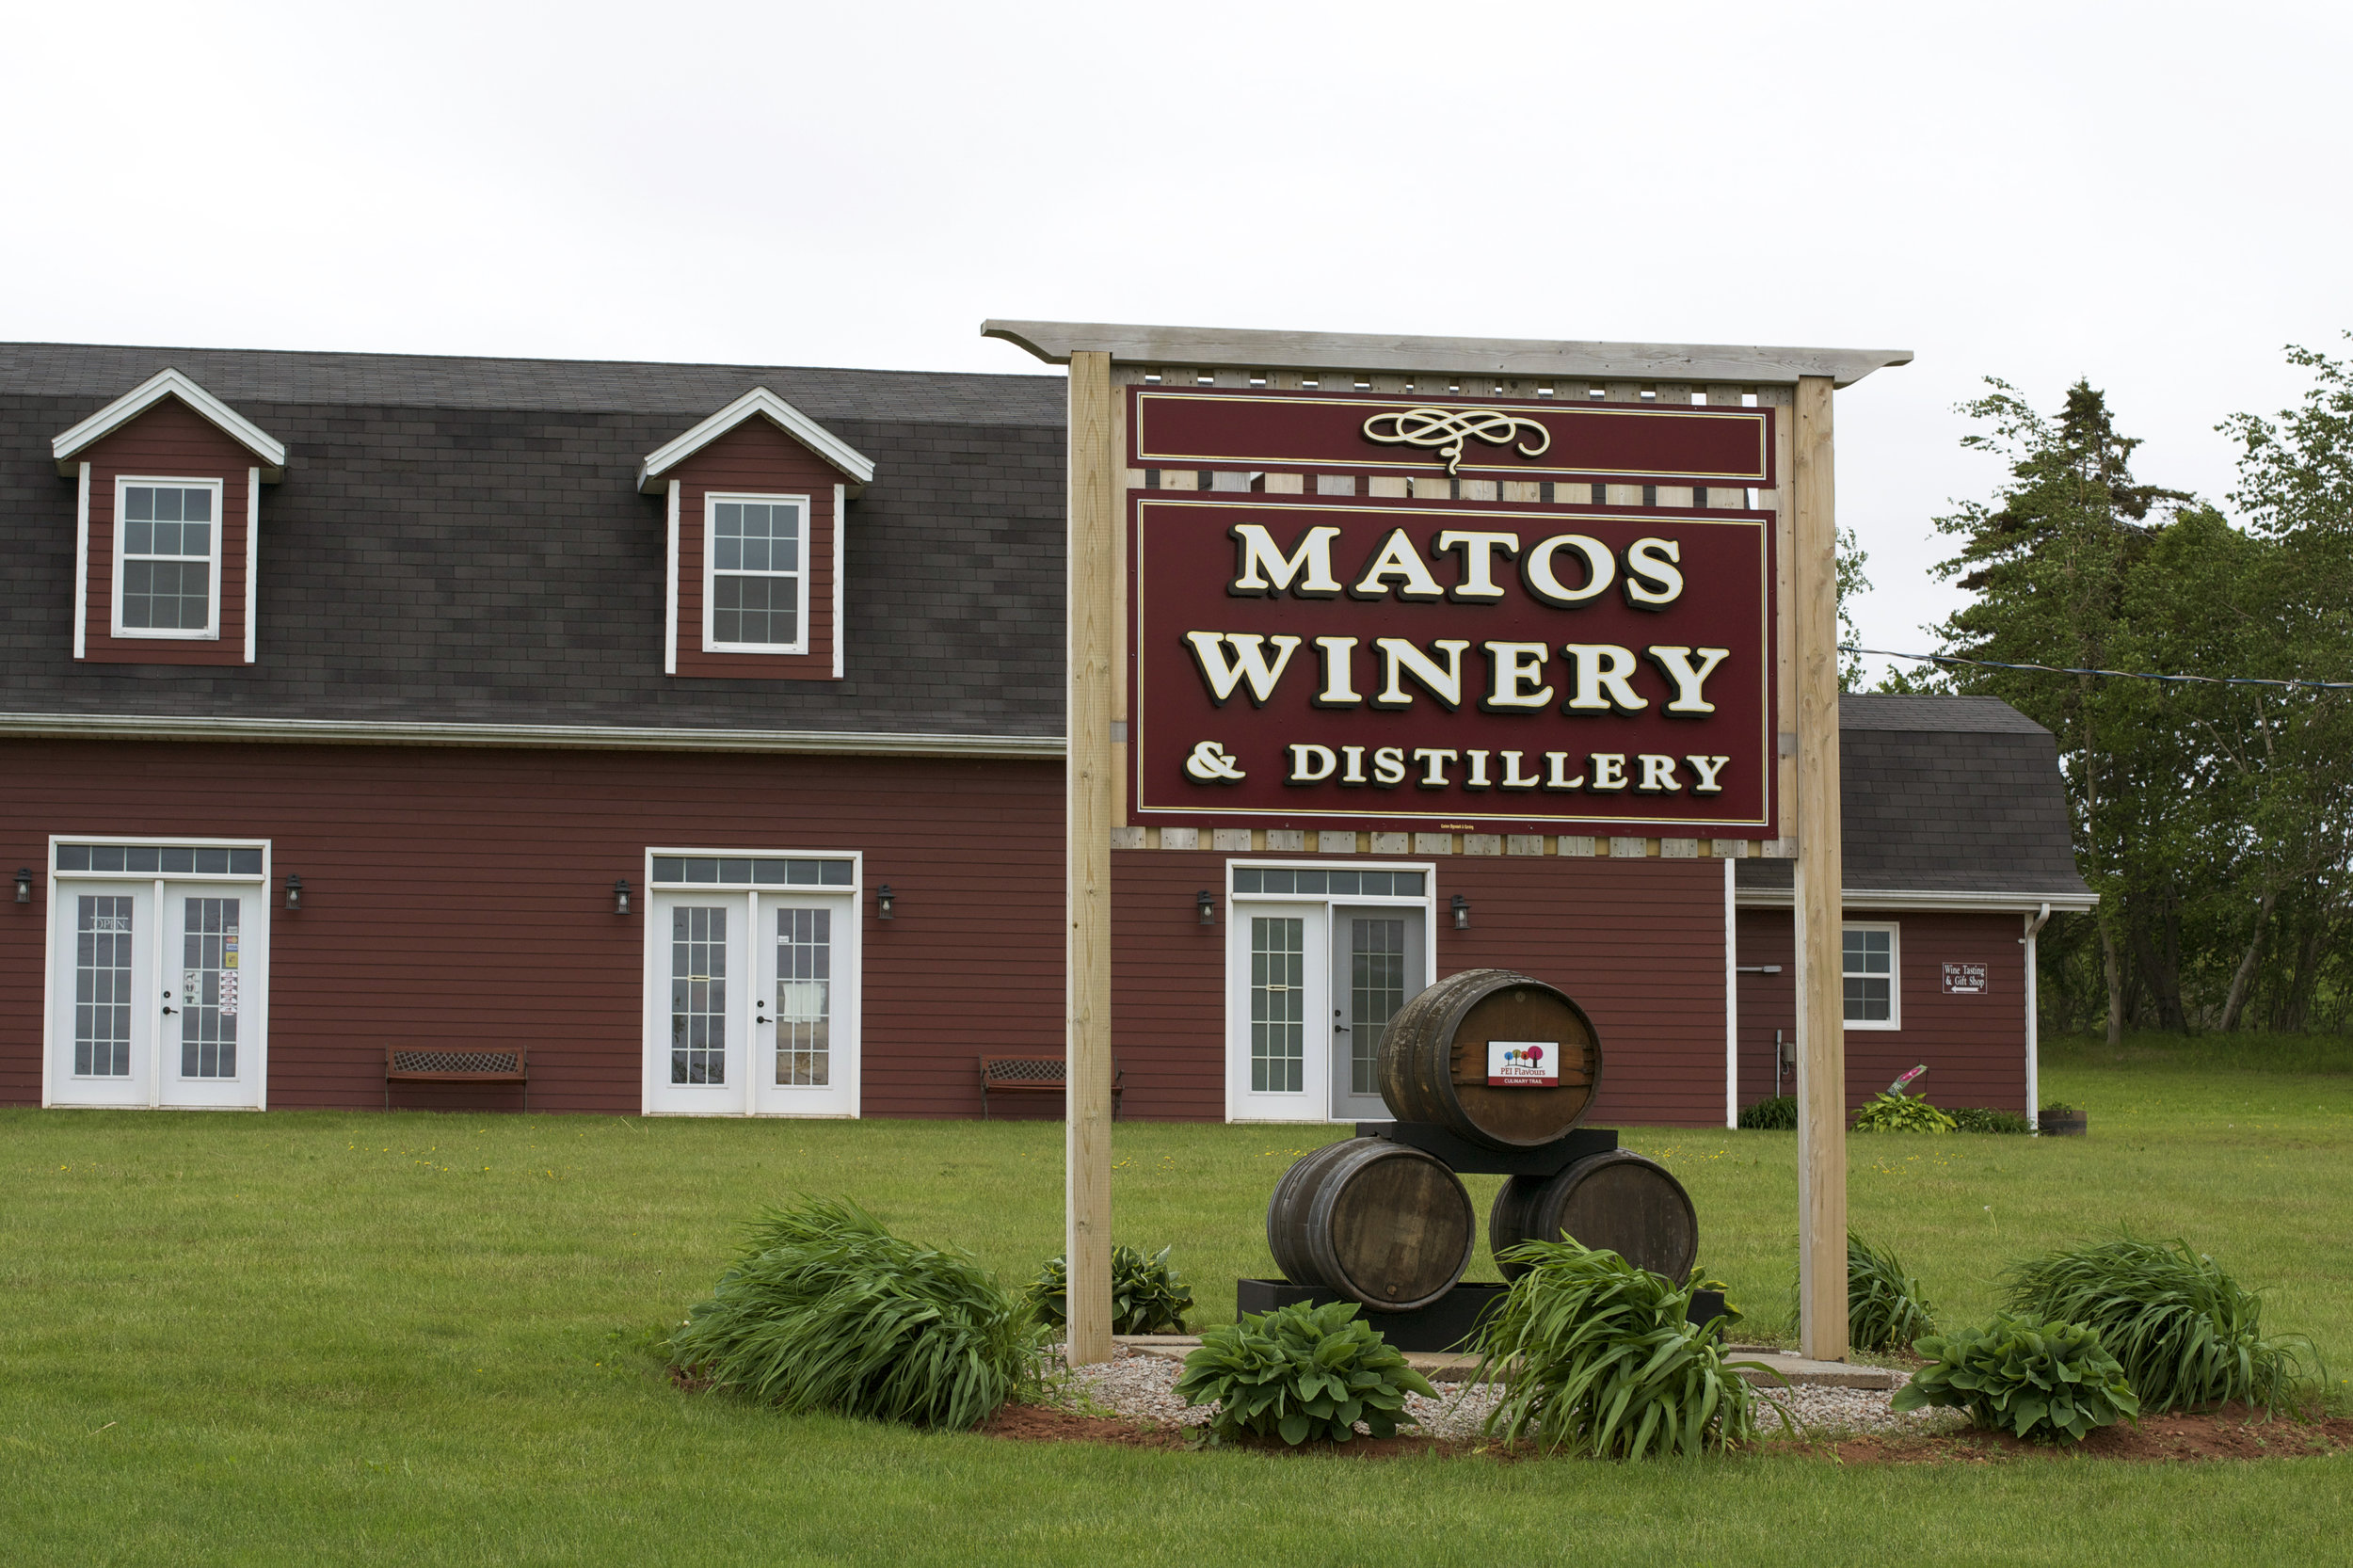 matos-winery-and-distillery.jpg